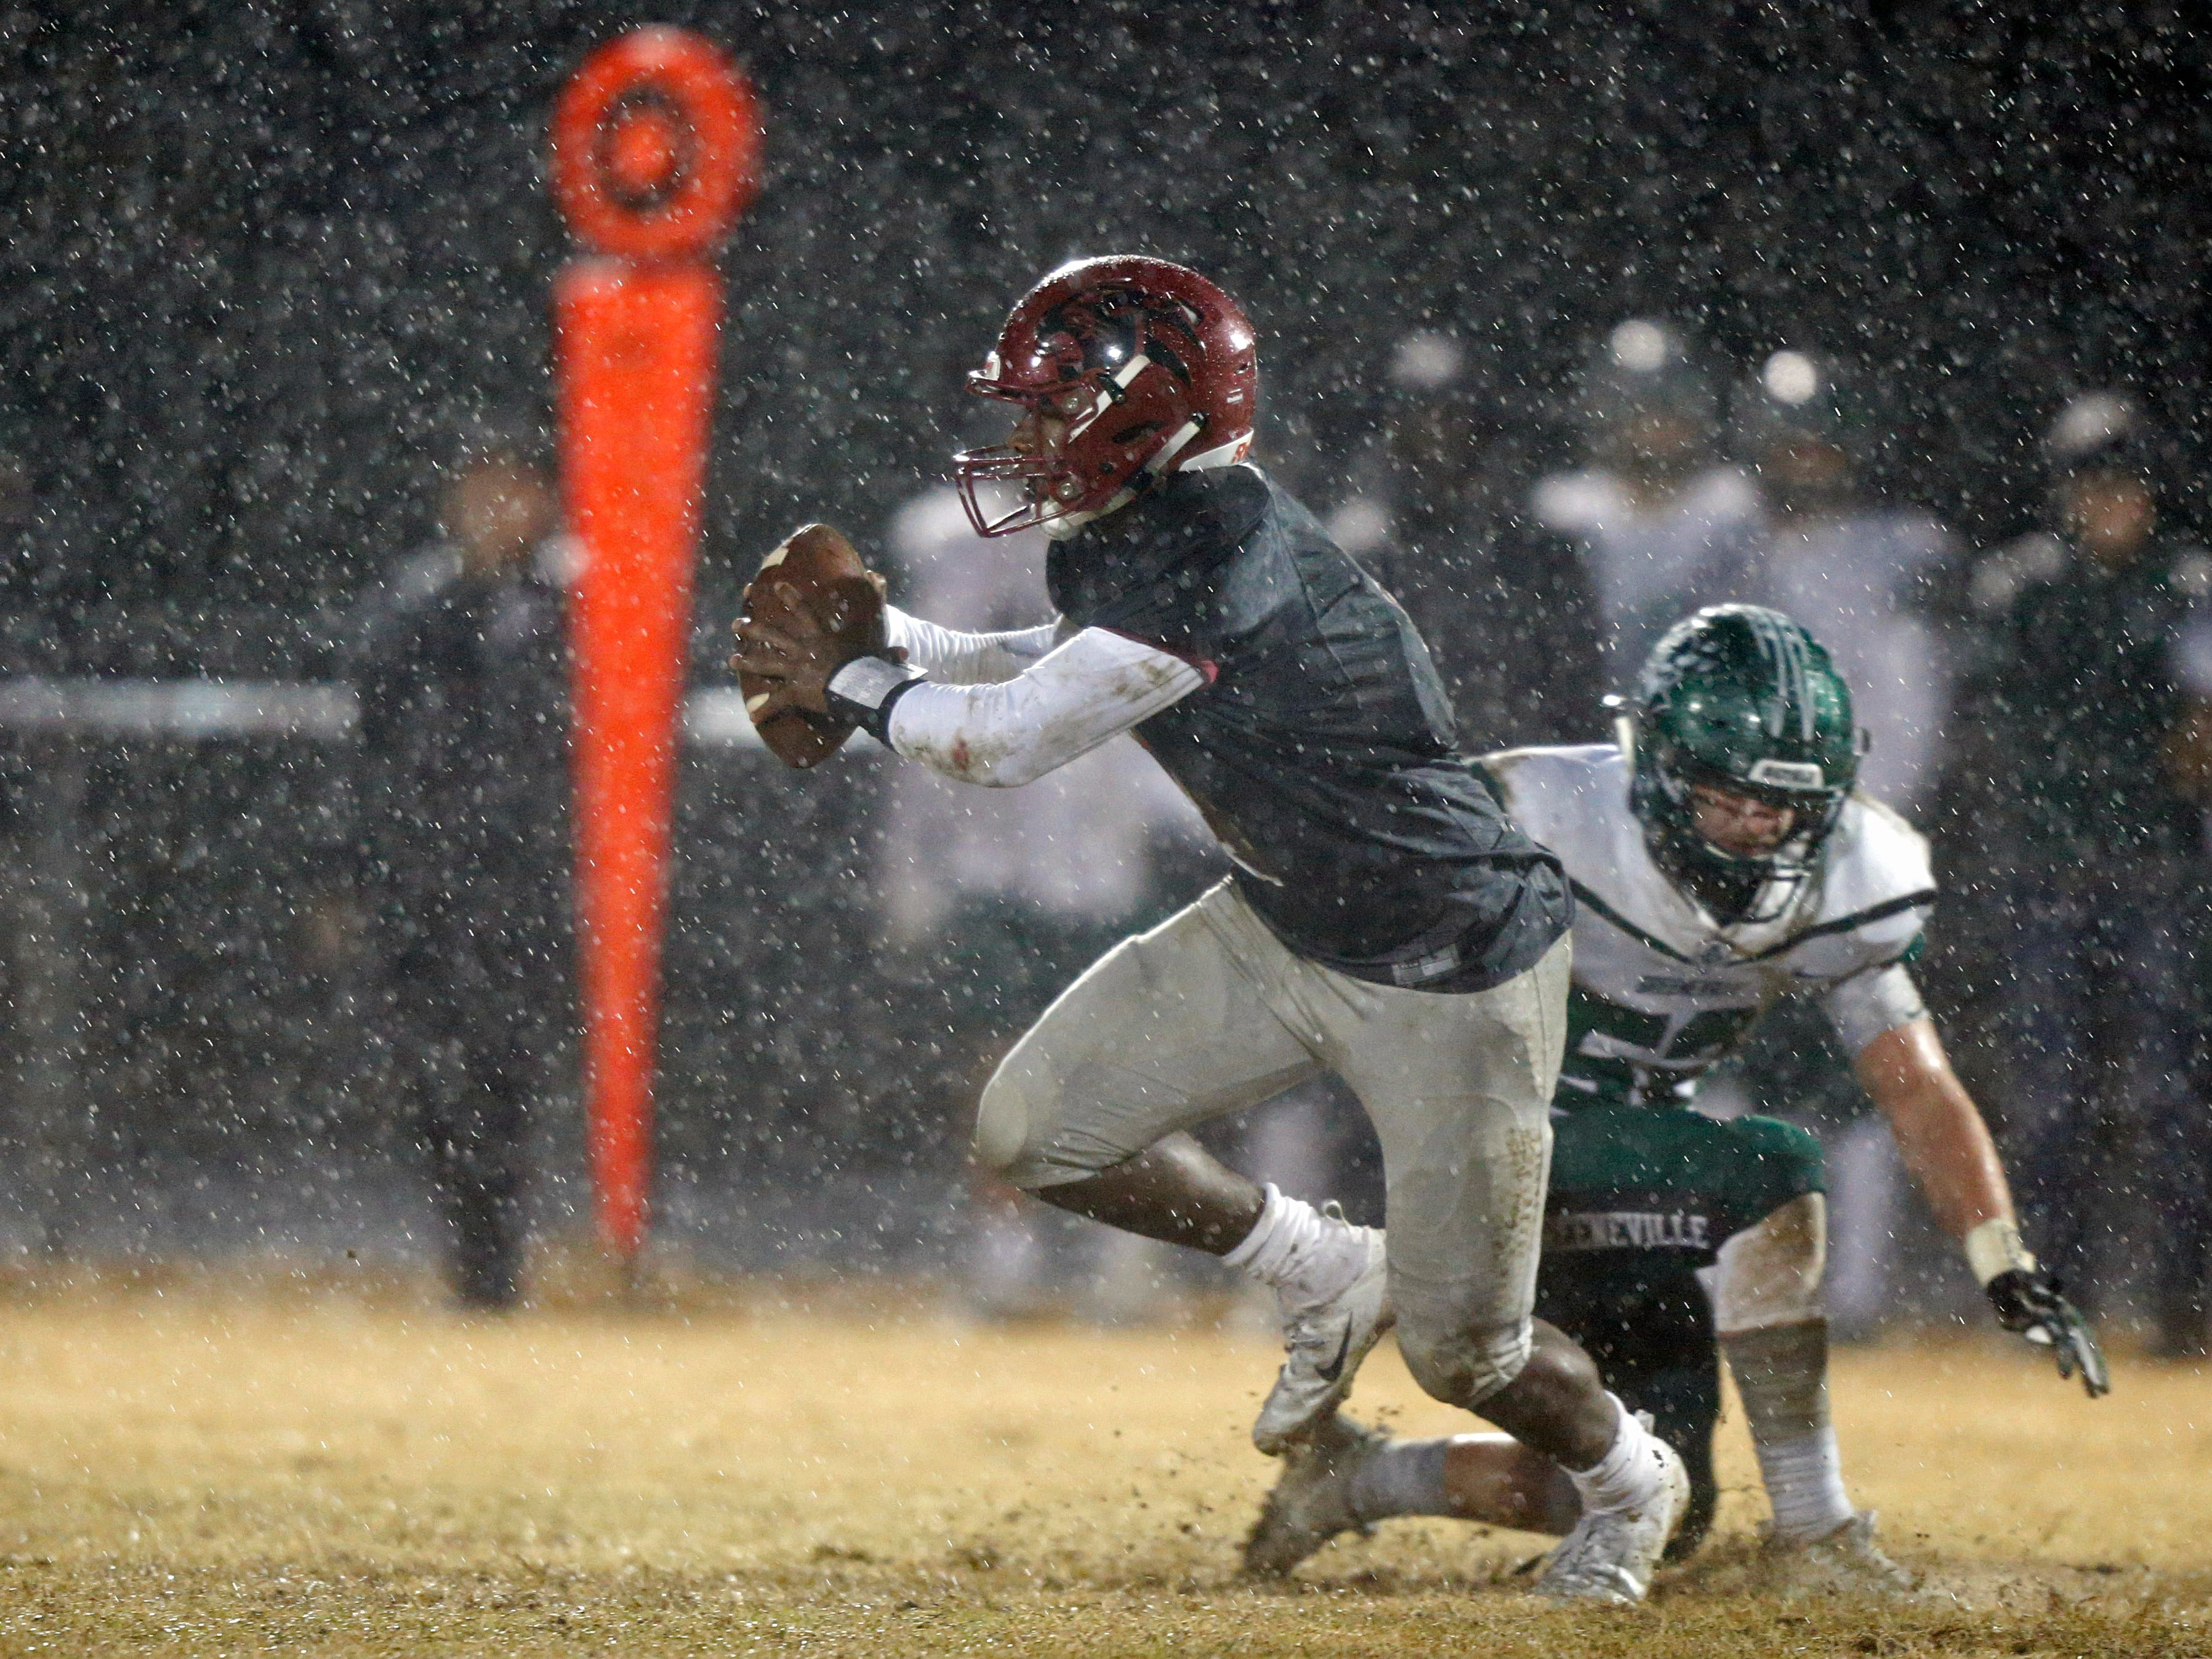 Maplewood's Bobo Hodges escapes from Greeneville's Trent Knight as the rain comes down during their game Friday, Nov. 23, 2018, in Nashville, TN.